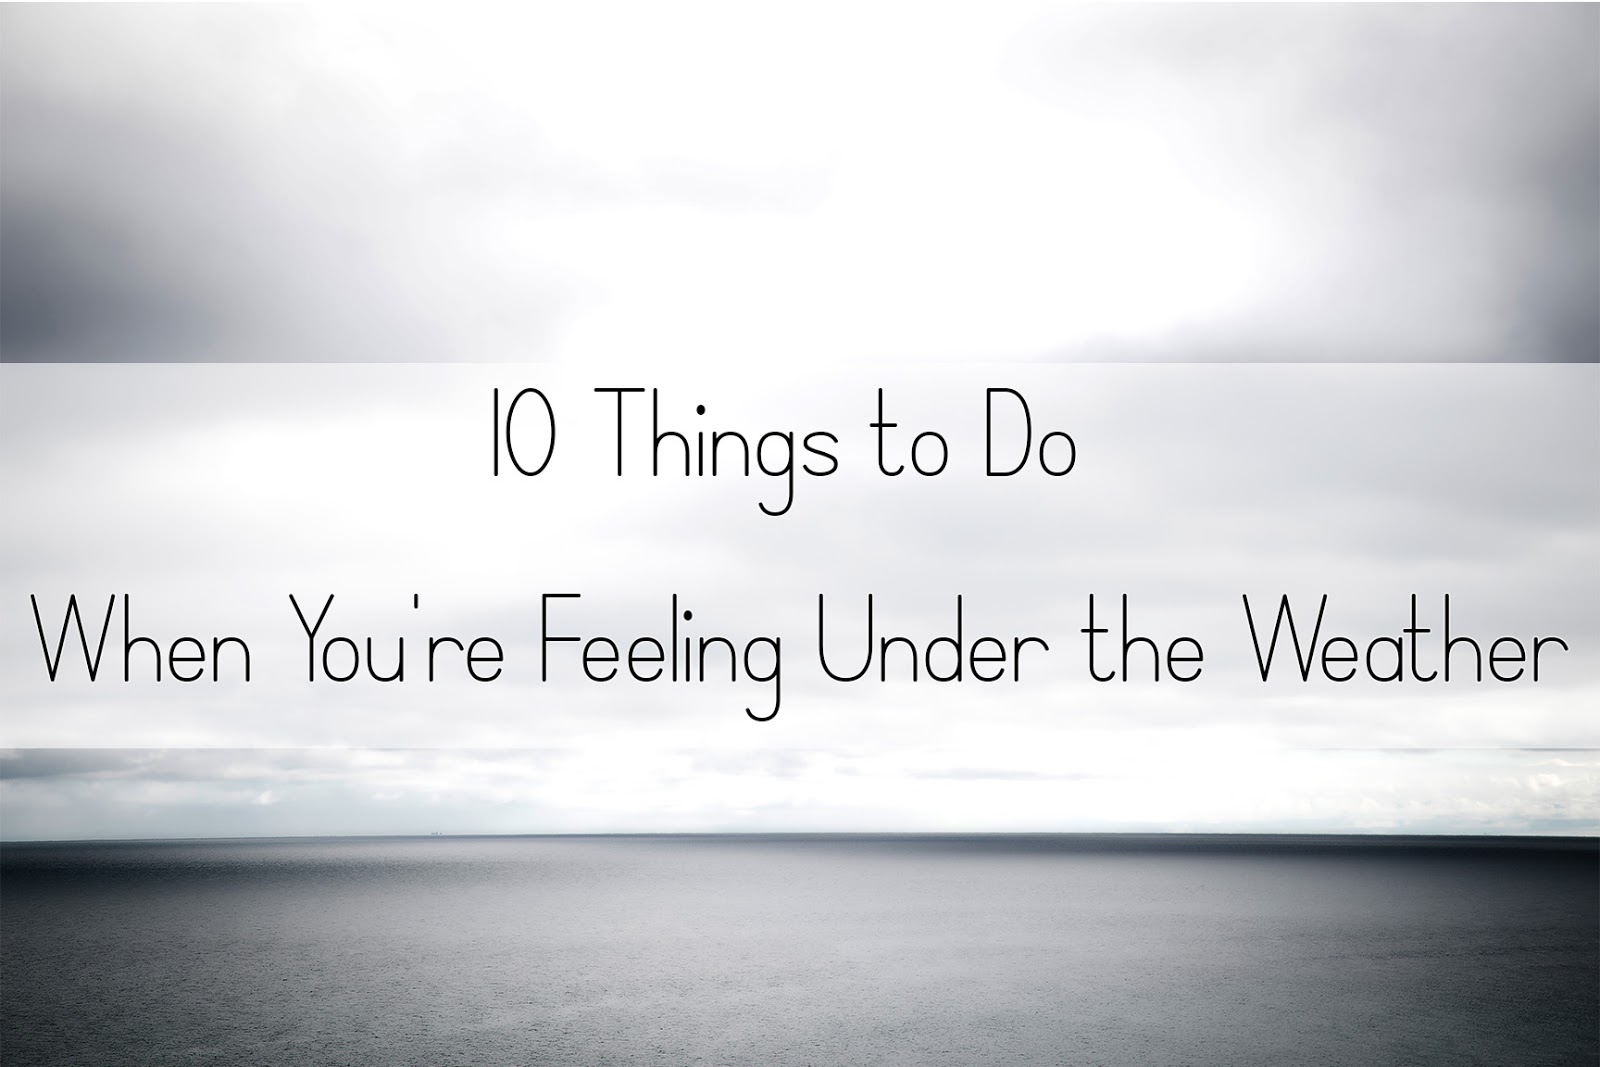 10 Things to Do When You're Feeling Under the Weather